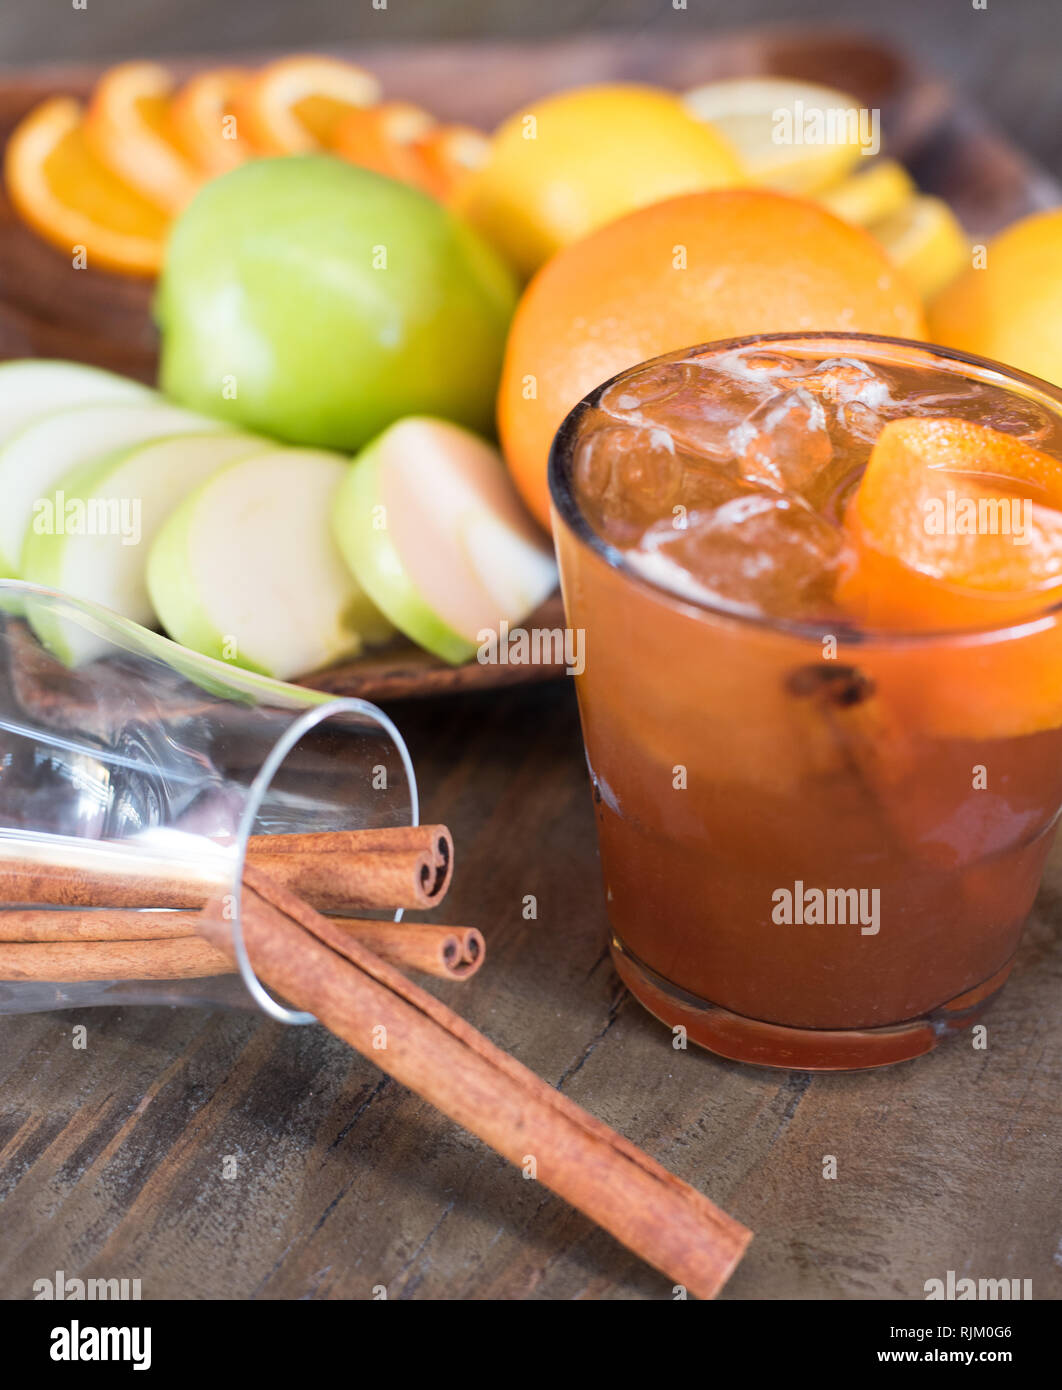 Fancy Hand Crafted Cocktail - Stock Image